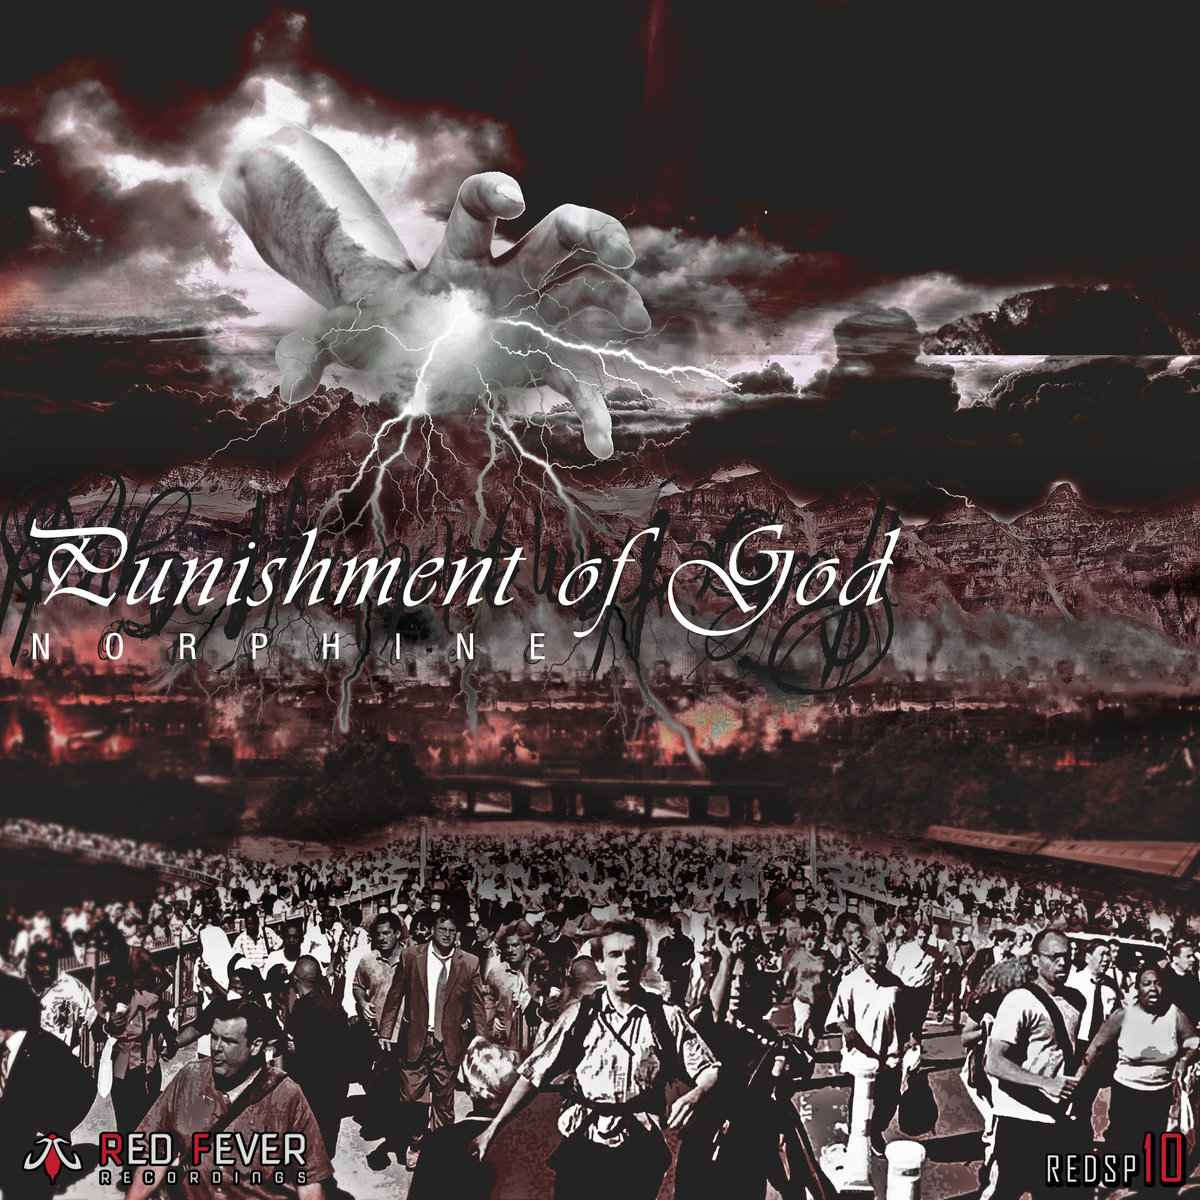 Norphine - Punishment of God @ 'Punishment of God' album (electronic, gabber)